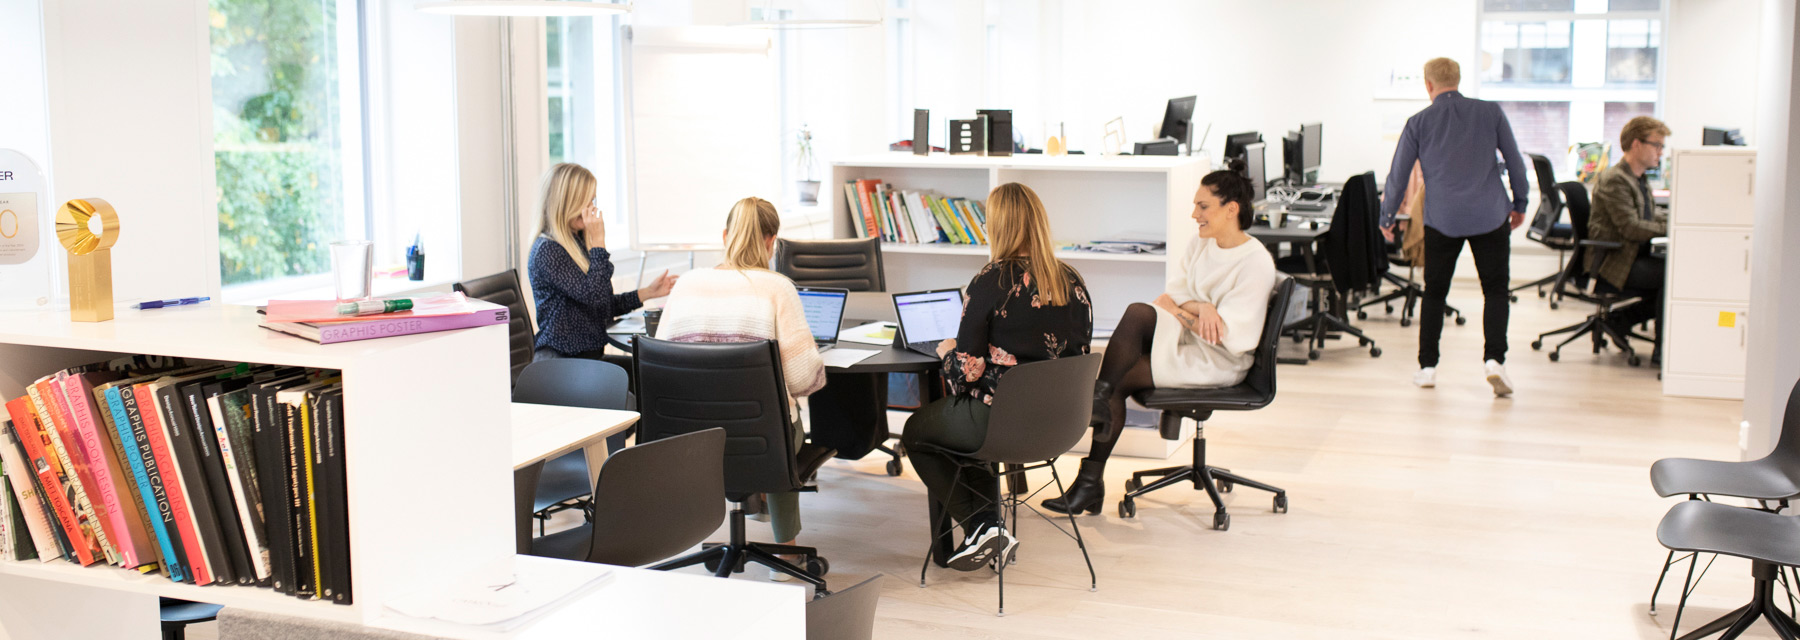 Many people working at the Oslo office - some sitting in a group, others by their desks.